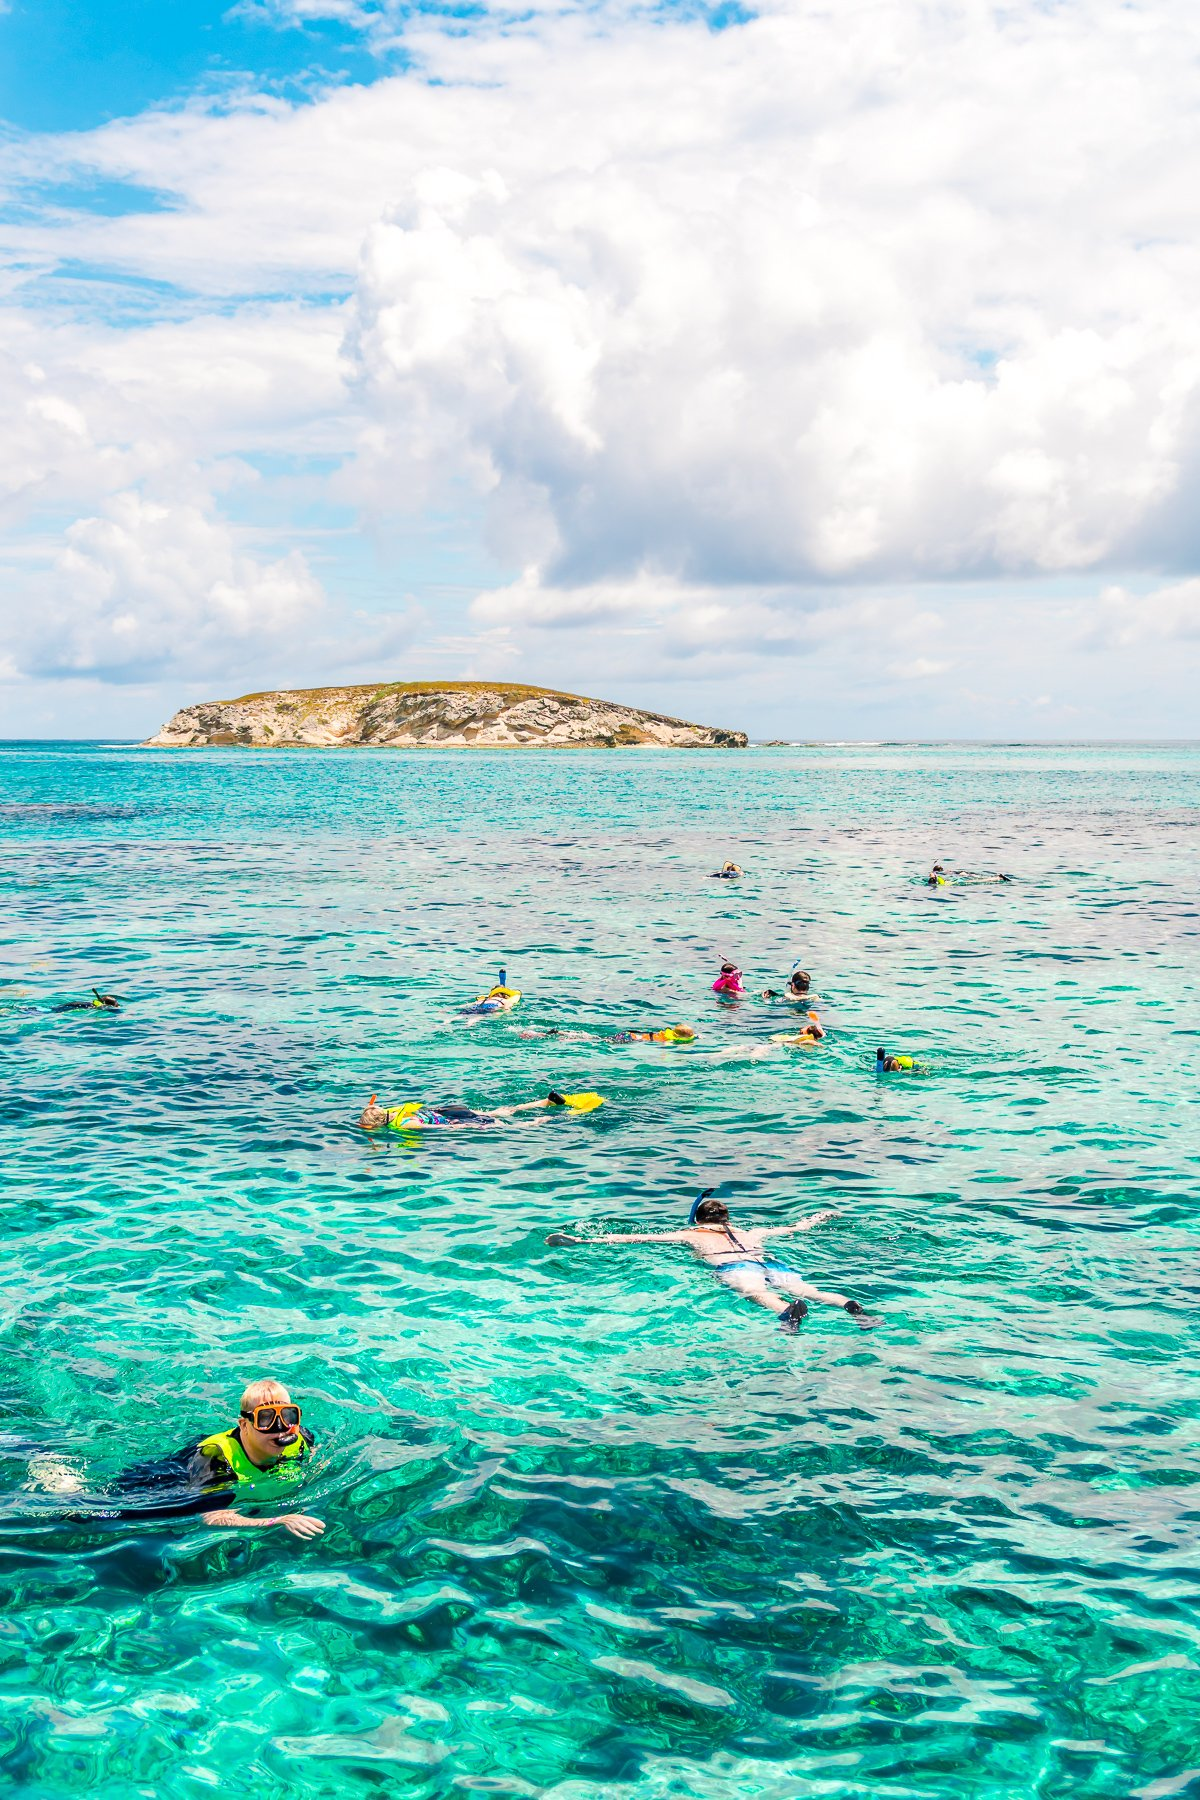 People snorkeling in the clear turquoise waters of Grand Turk in the Caribbean.